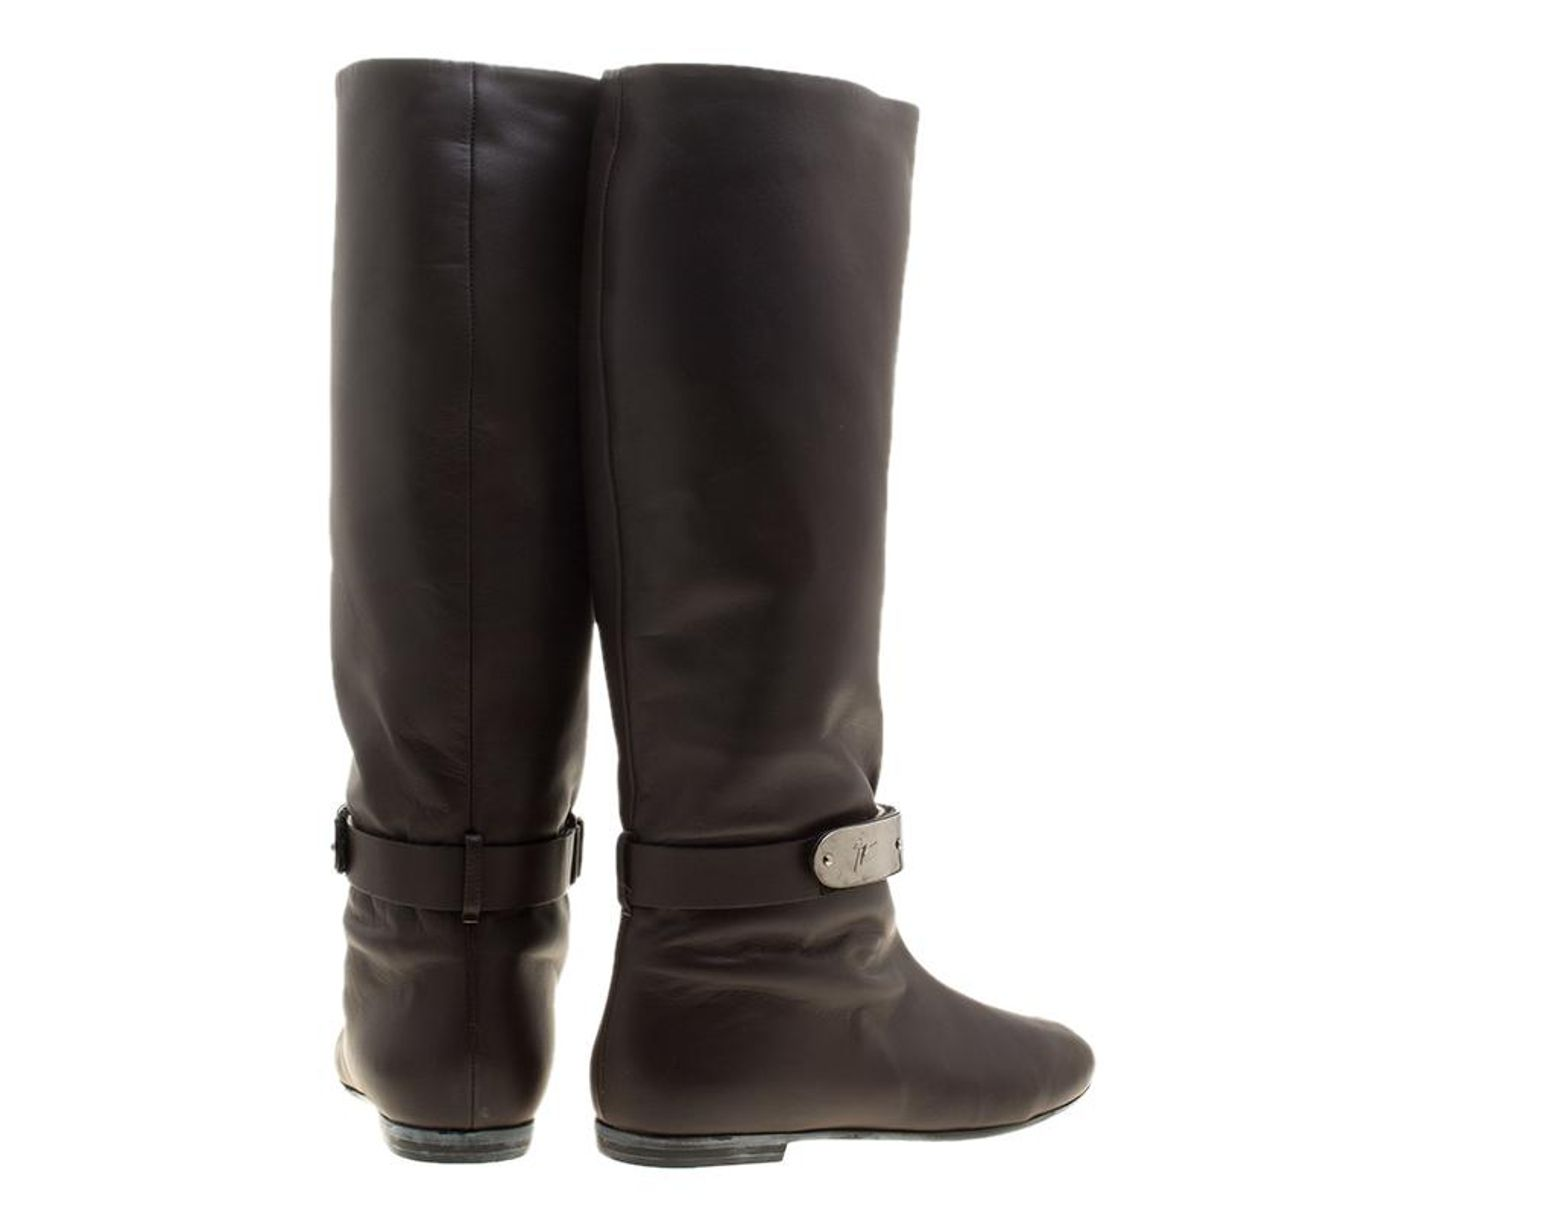 2cd3b183eeae1 Giuseppe Zanotti Brown Leather Logo Plaque Flat Over The Knee Boots Size 38  in Brown - Lyst